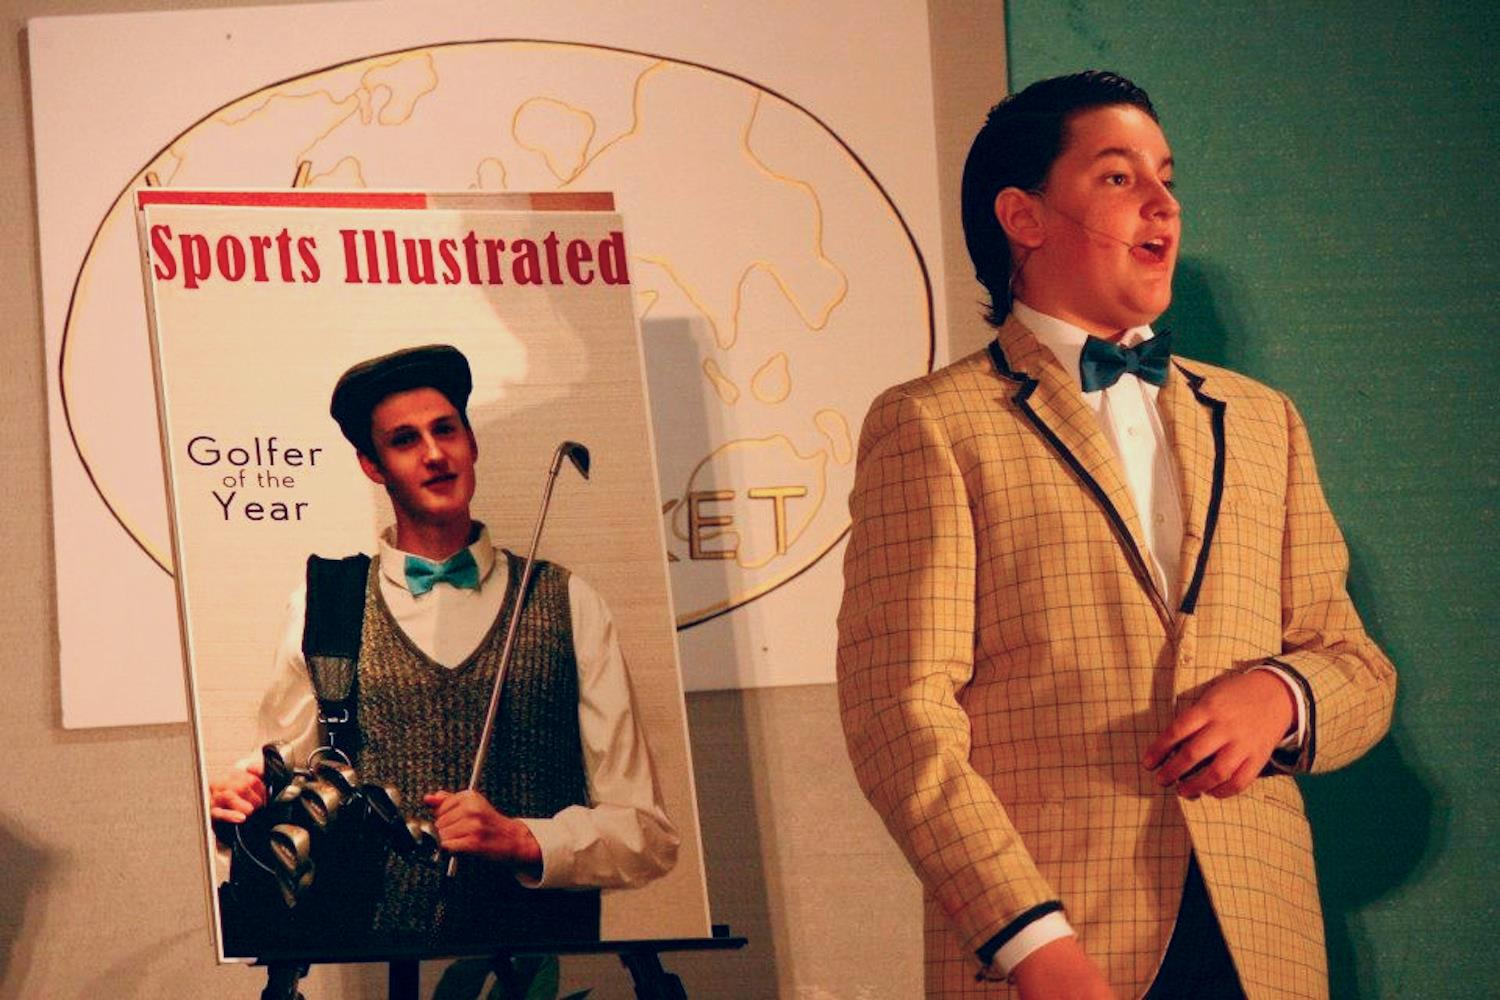 HOW TO SUCCEED - VIEW GALLERY